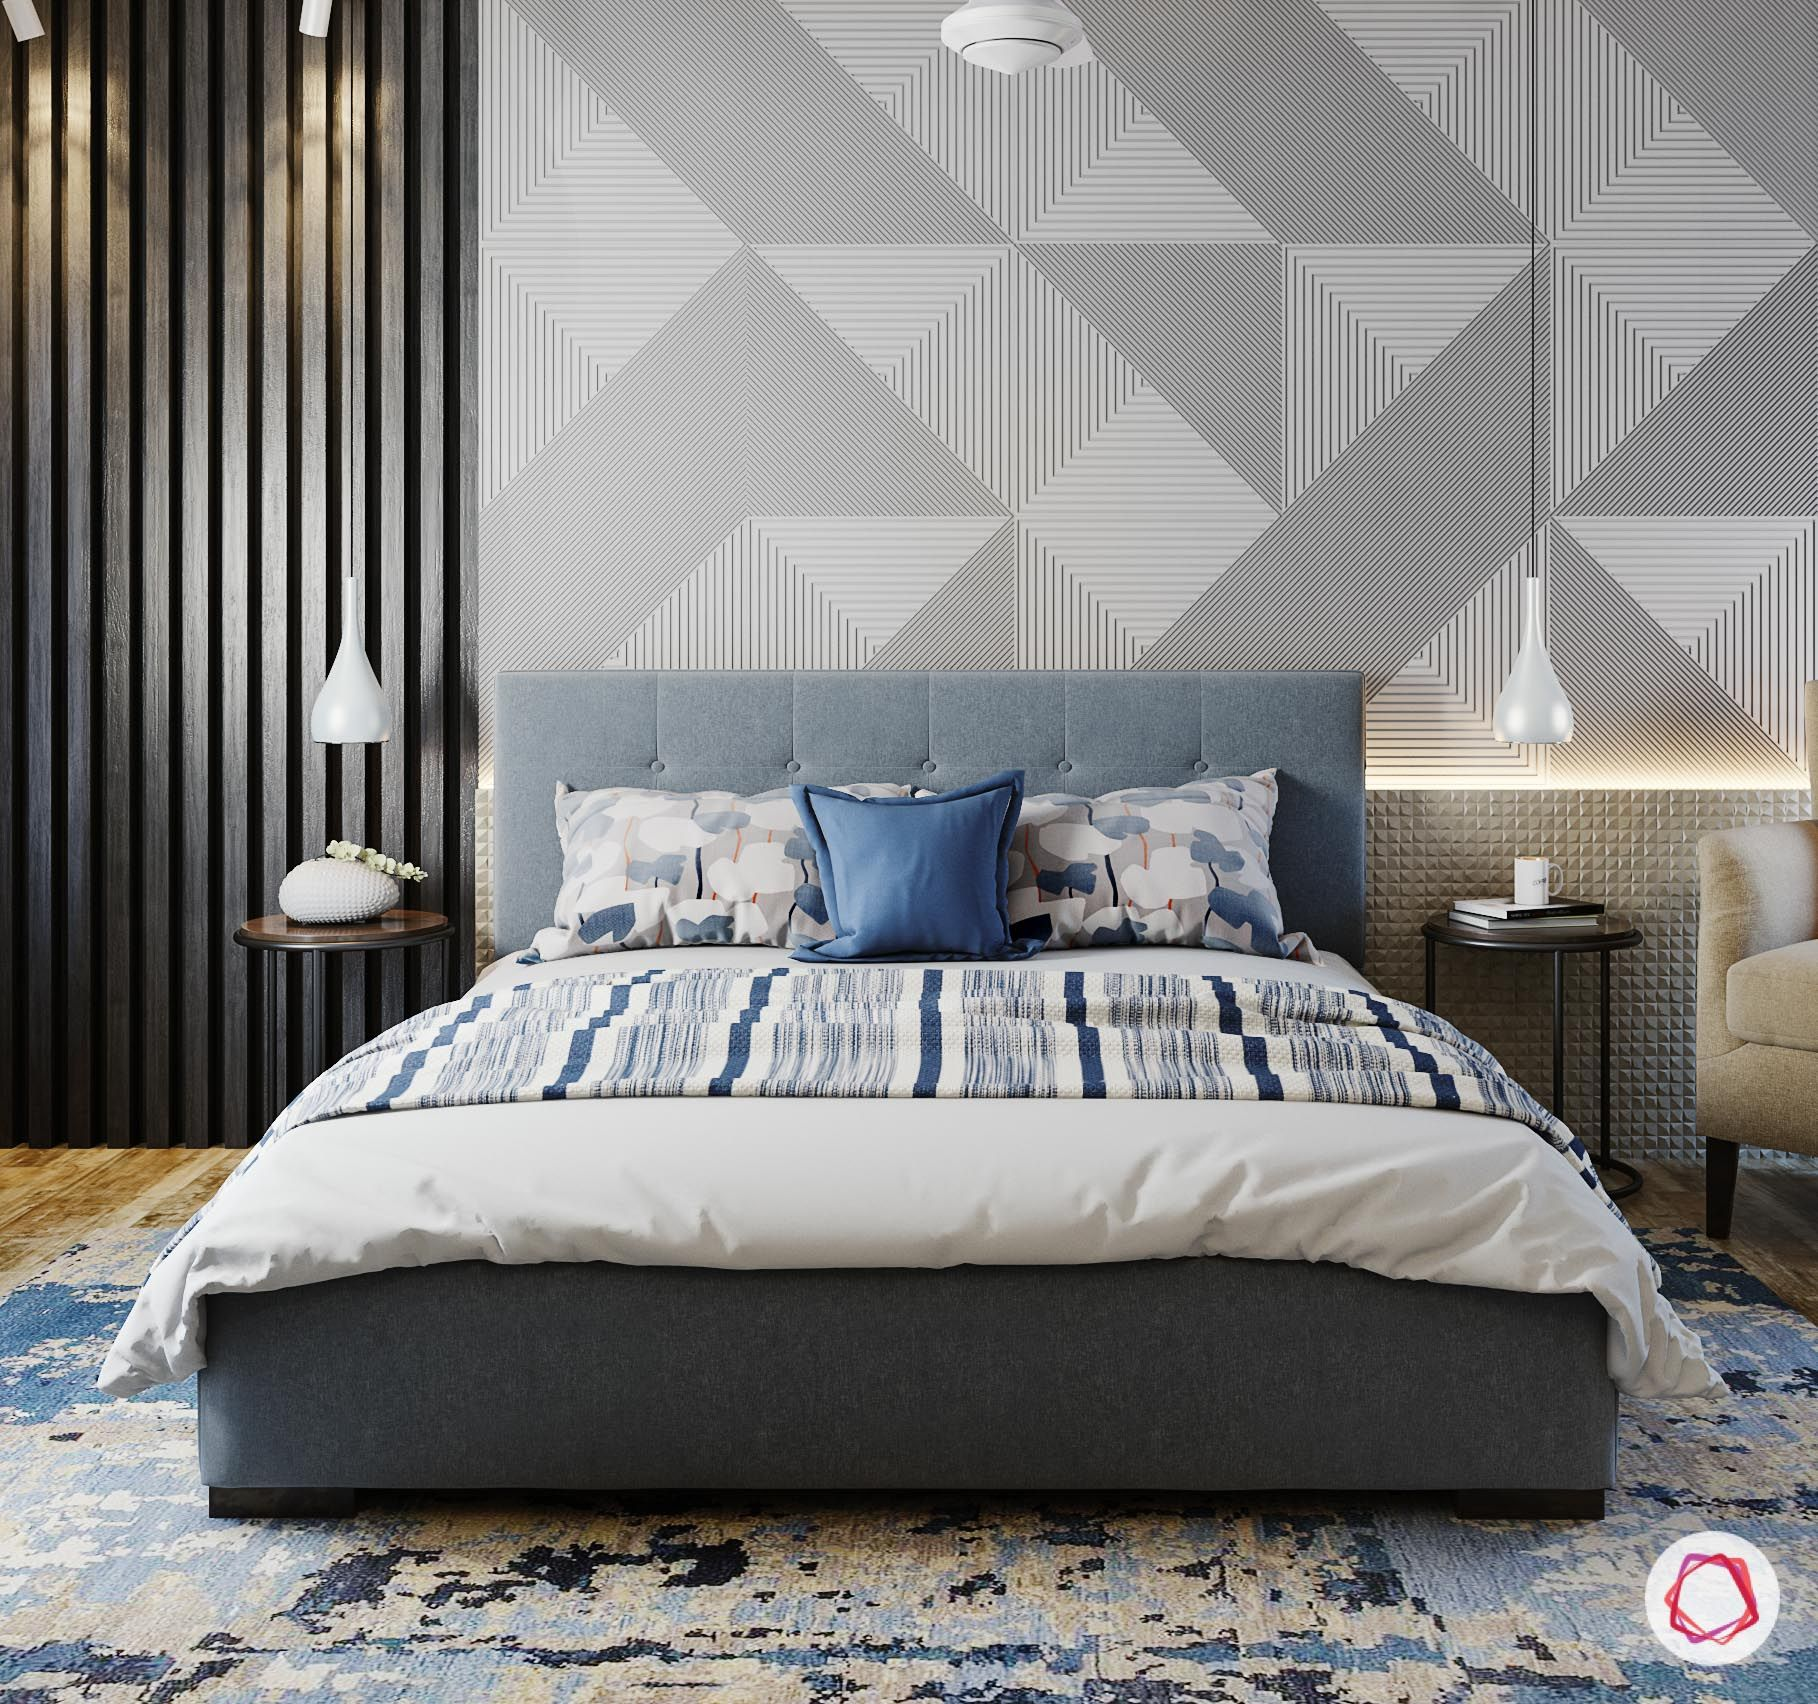 A Contemporary Bedroom With New Age Patterns And A Muted Grey And Blue Color Scheme Be Modern Wallpaper Bedroom Bedroom Wall Designs Grey Wallpaper Bedroom